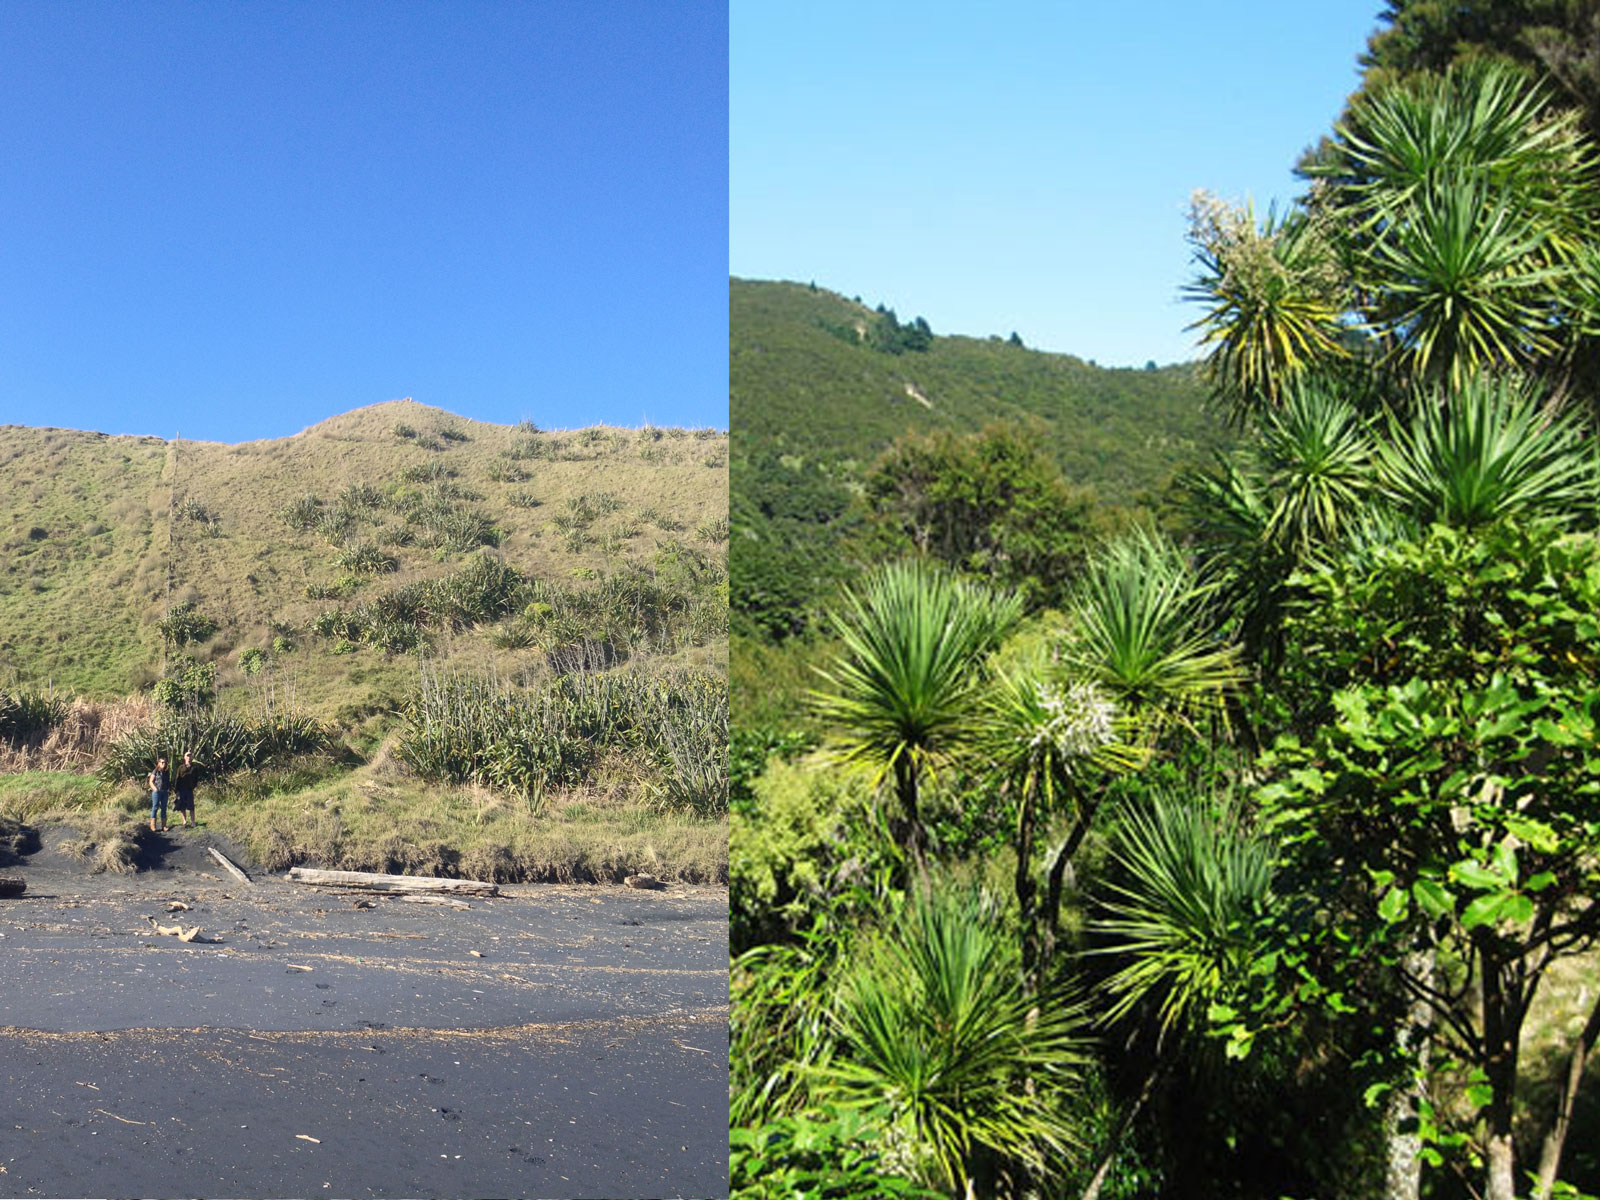 Overgrazed grass on left, healthy NZ bush on right. PiwiWiwi's Carbon Offset project aims to make this change